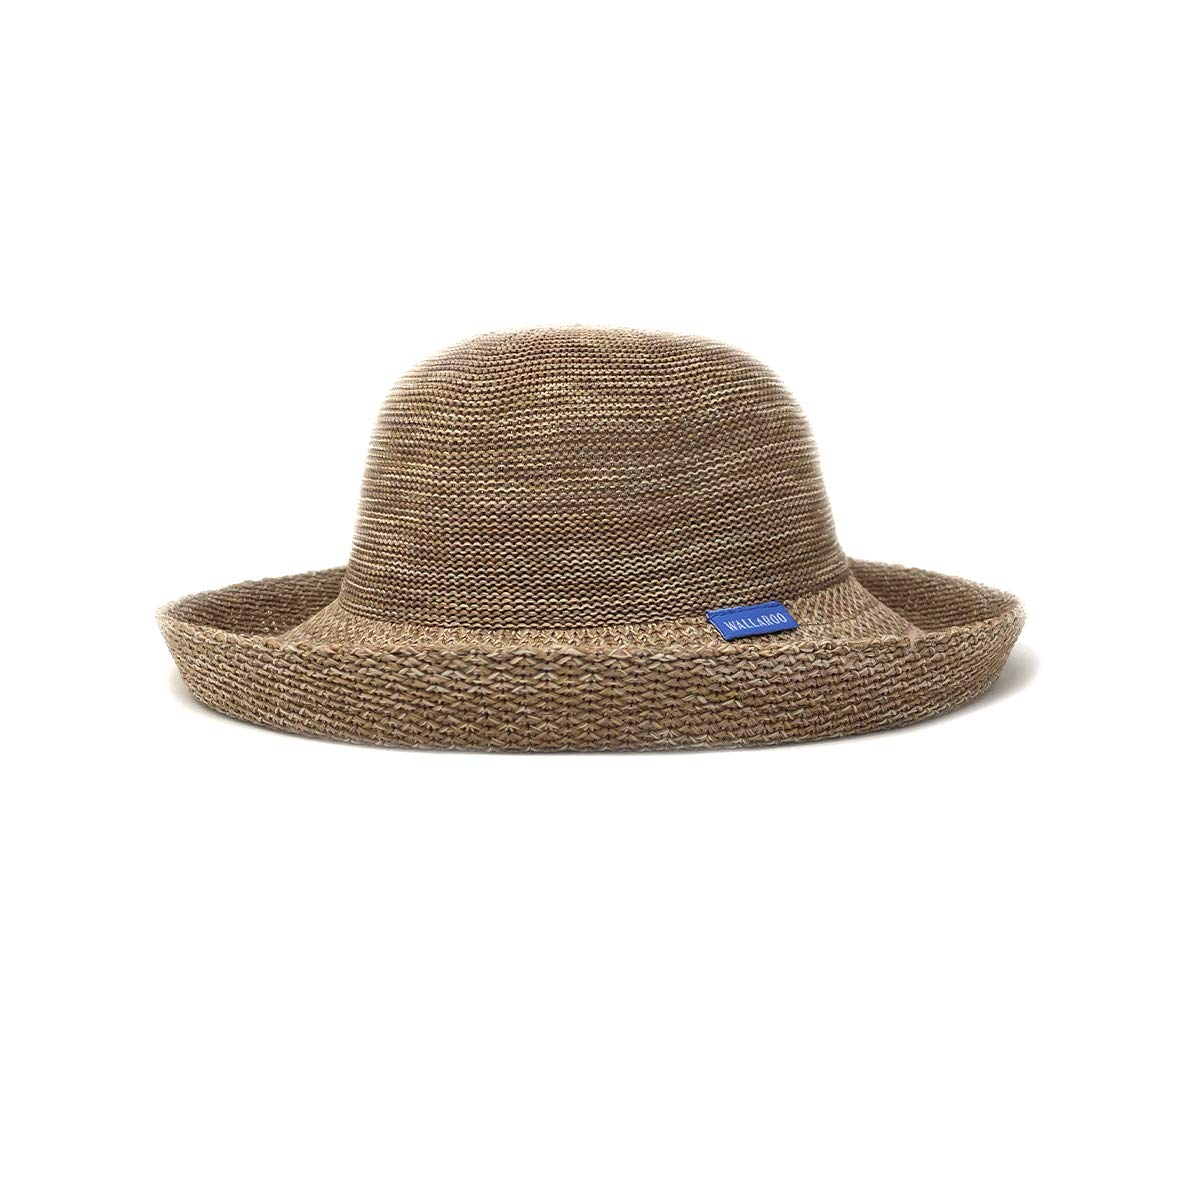 Wallaroo Hat Company Women's Petite Victoria Sun Hat - Mixed Camel - Packable, Modern Style, Petite Size, Designed in Australia. by Wallaroo Hat Company (Image #2)